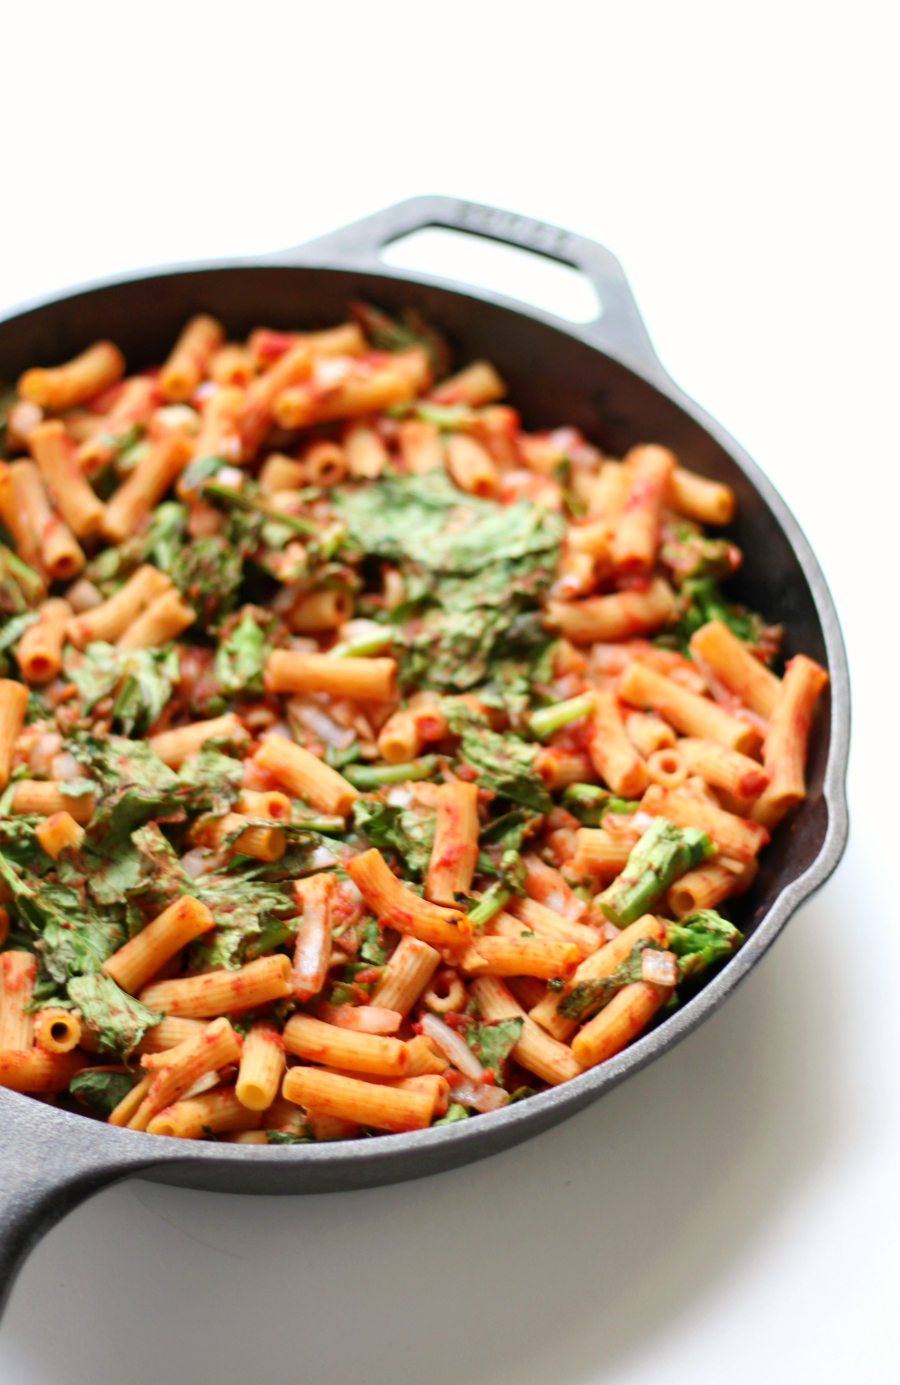 Sweet-Tomato-Broccoli-Rabe-Baked-Penne-1